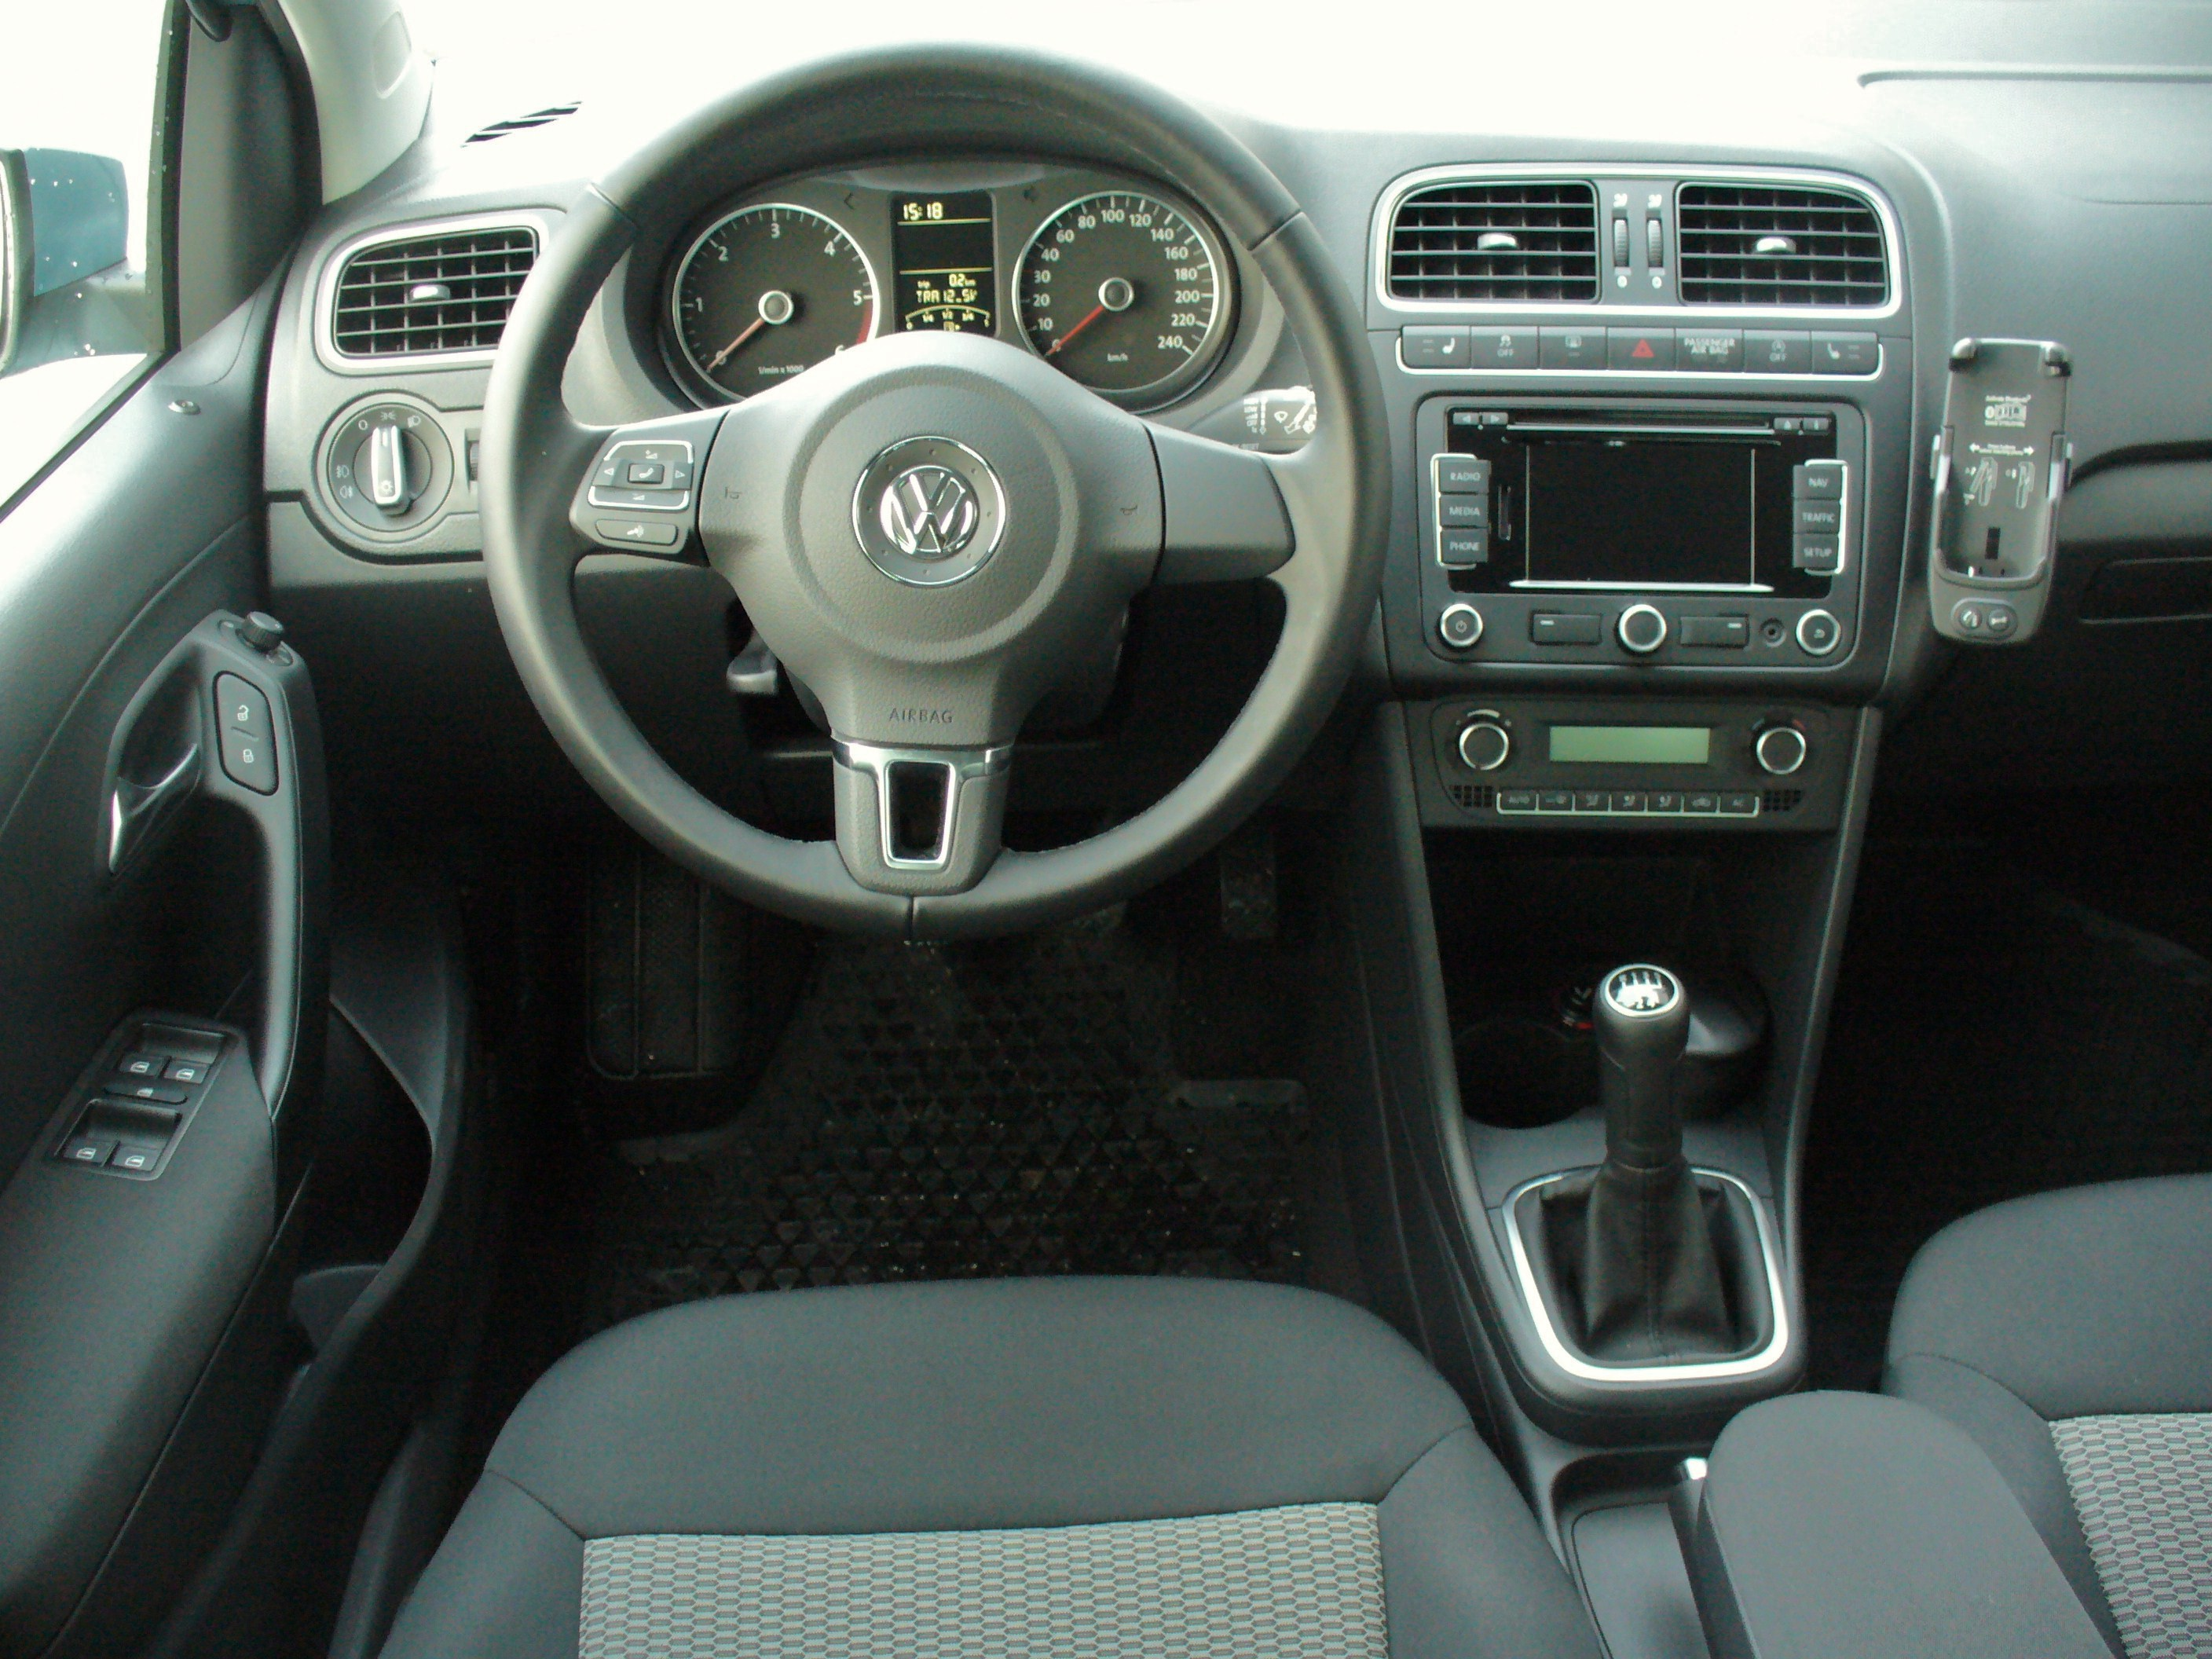 vw polo 1 2 tdi bluemotion photos 5 on better parts ltd. Black Bedroom Furniture Sets. Home Design Ideas